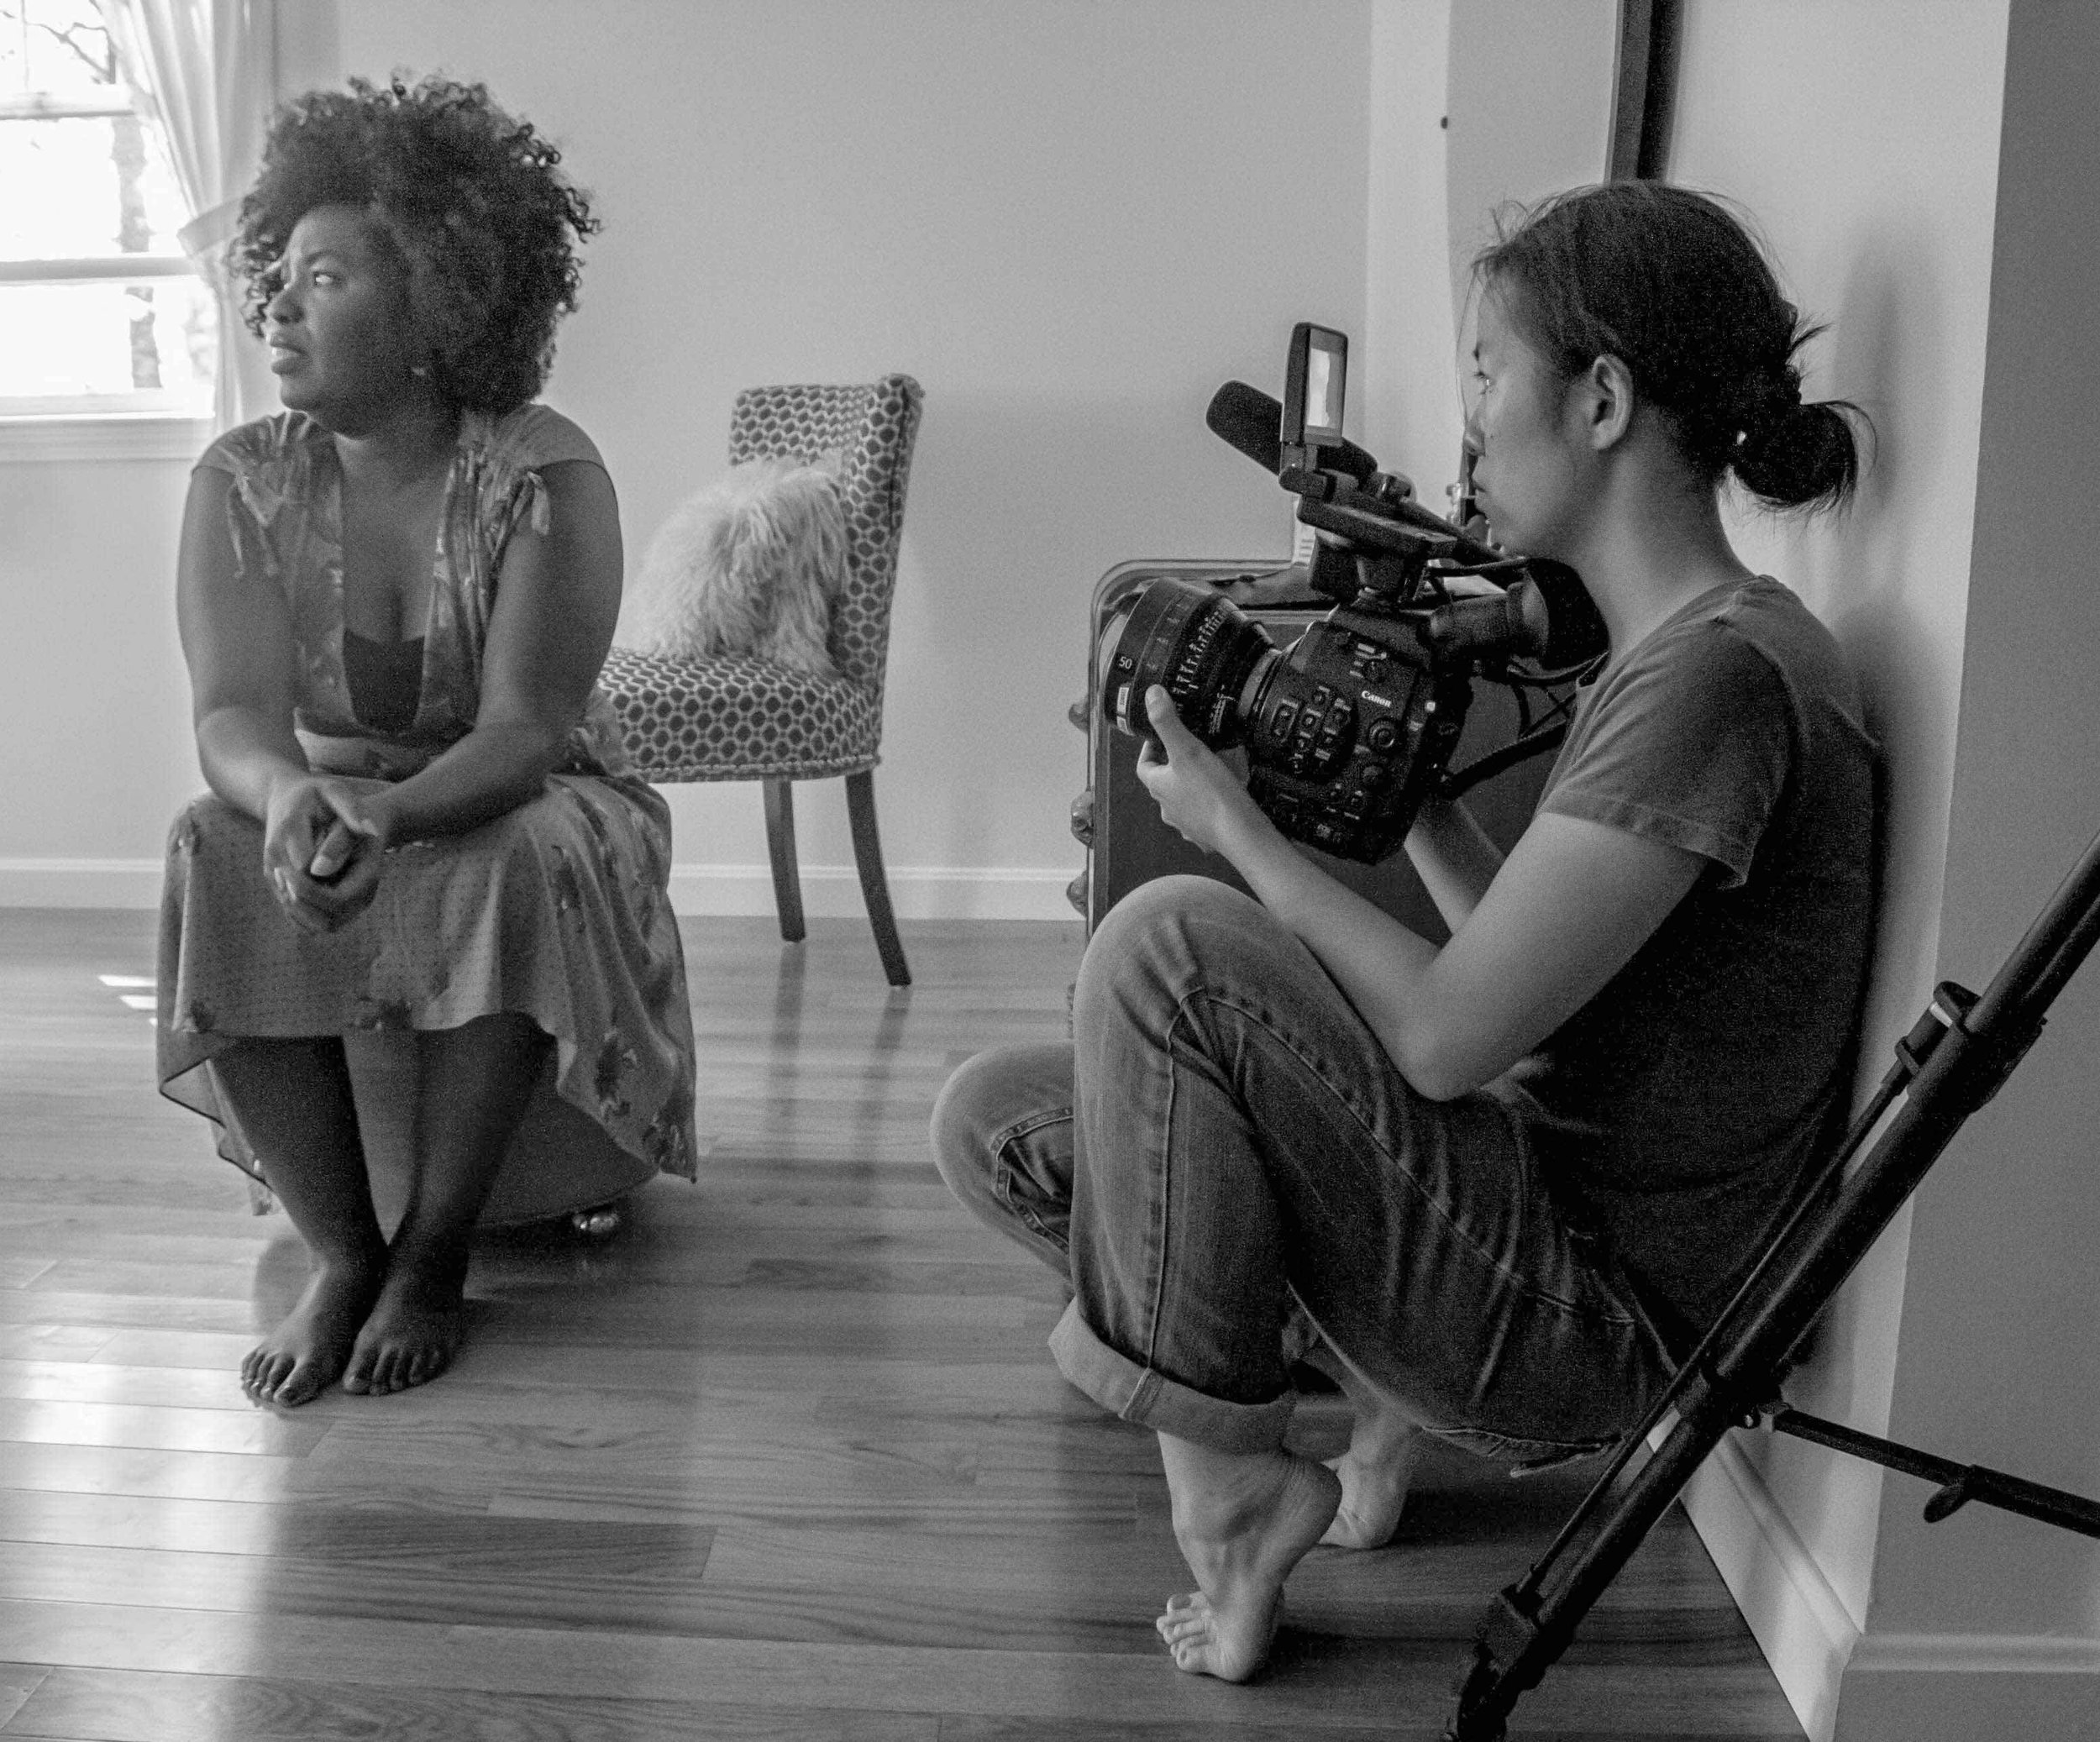 On set Jih-E Peng for our documentary featuring women in film